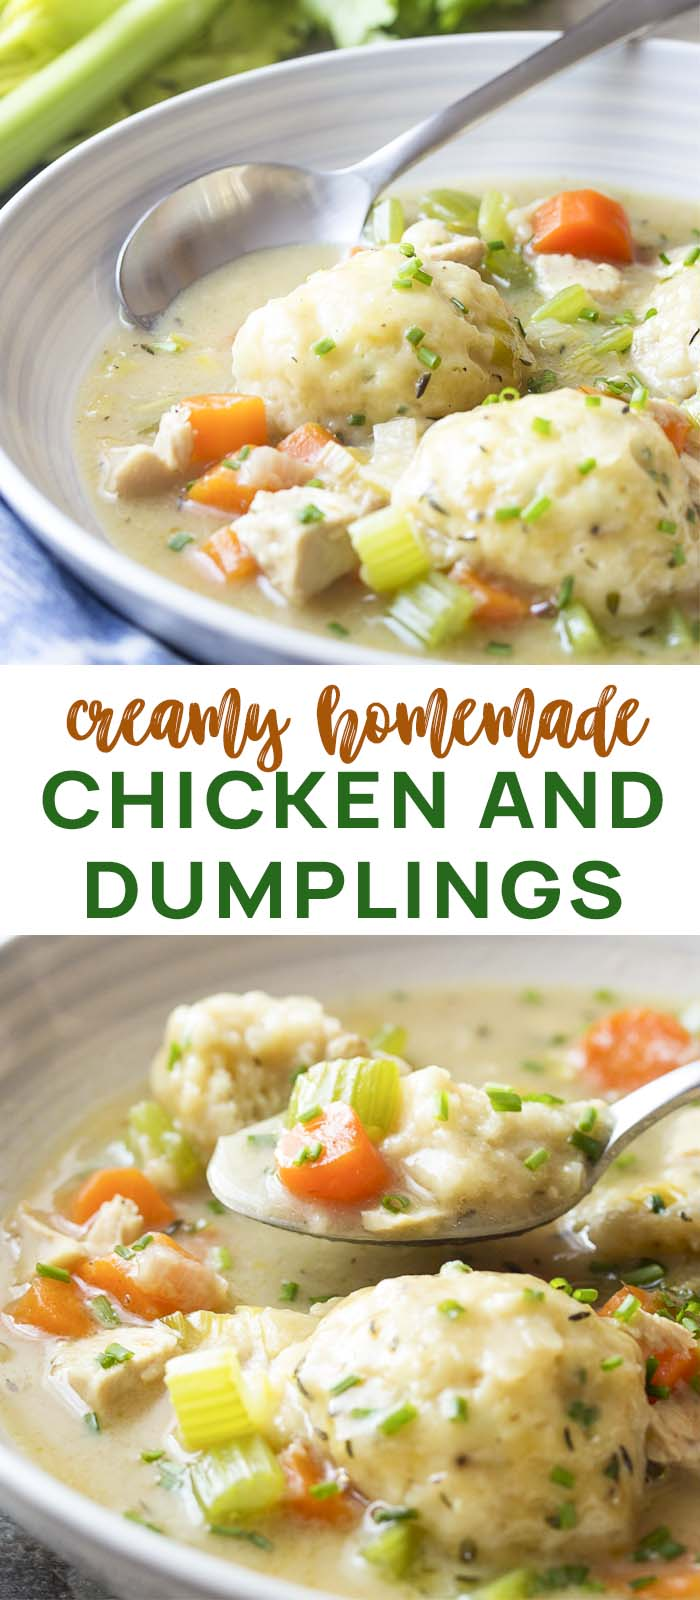 Chicken soup and dumplings in a wide bowl with text overlay - Chicken and Dumplings.